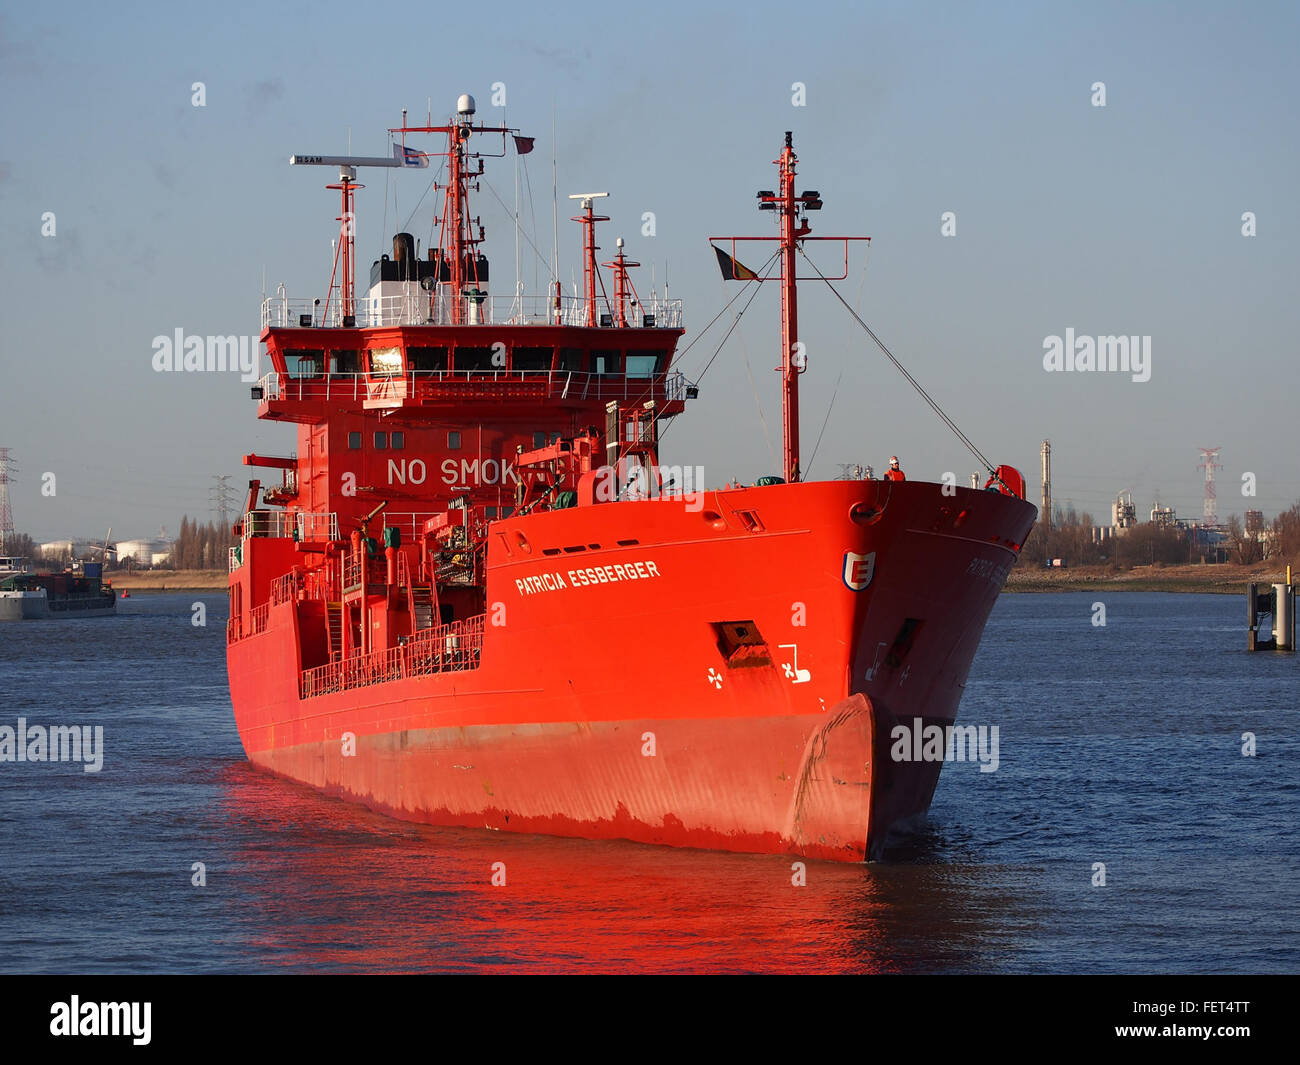 Patricia Essberger (ship, 2000) IMO 9212486 Schelde, Port of Antwerp pic2 - Stock Image